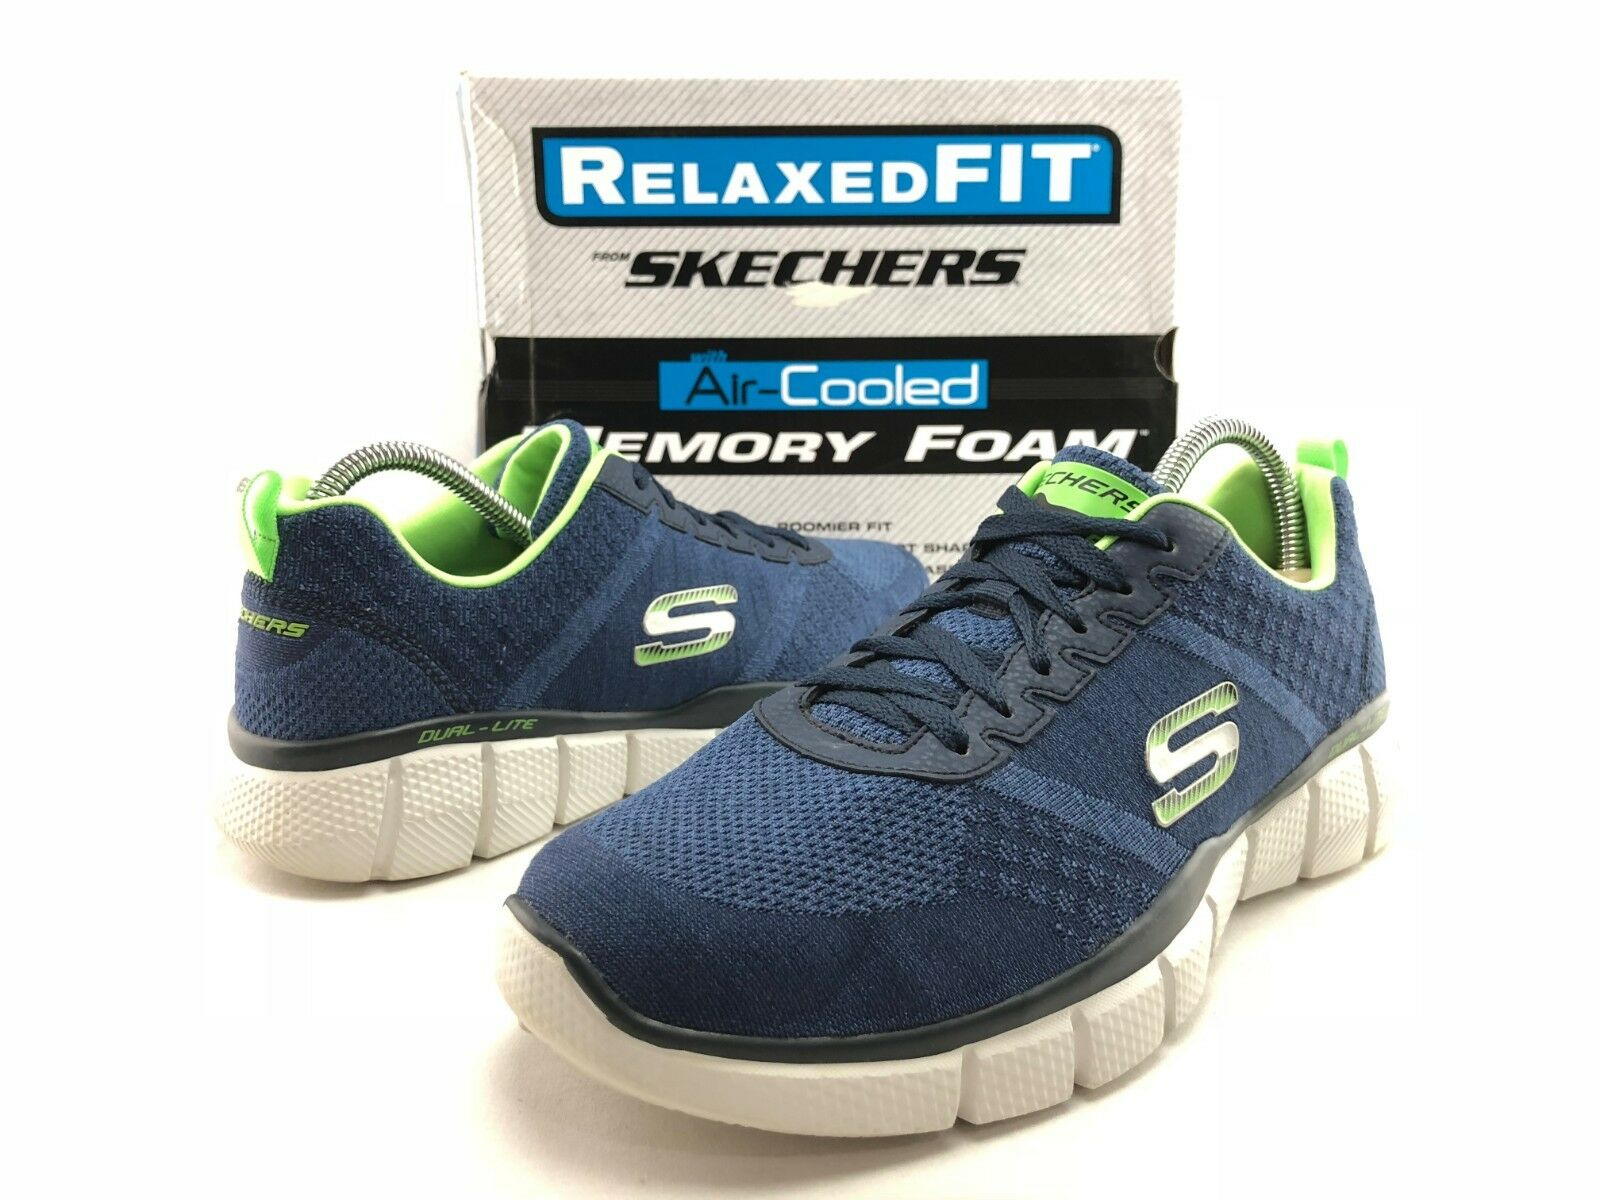 Skechers True Balance hommes 's bleu Green Lace Up Athletic Running Chaussures US 8 C313